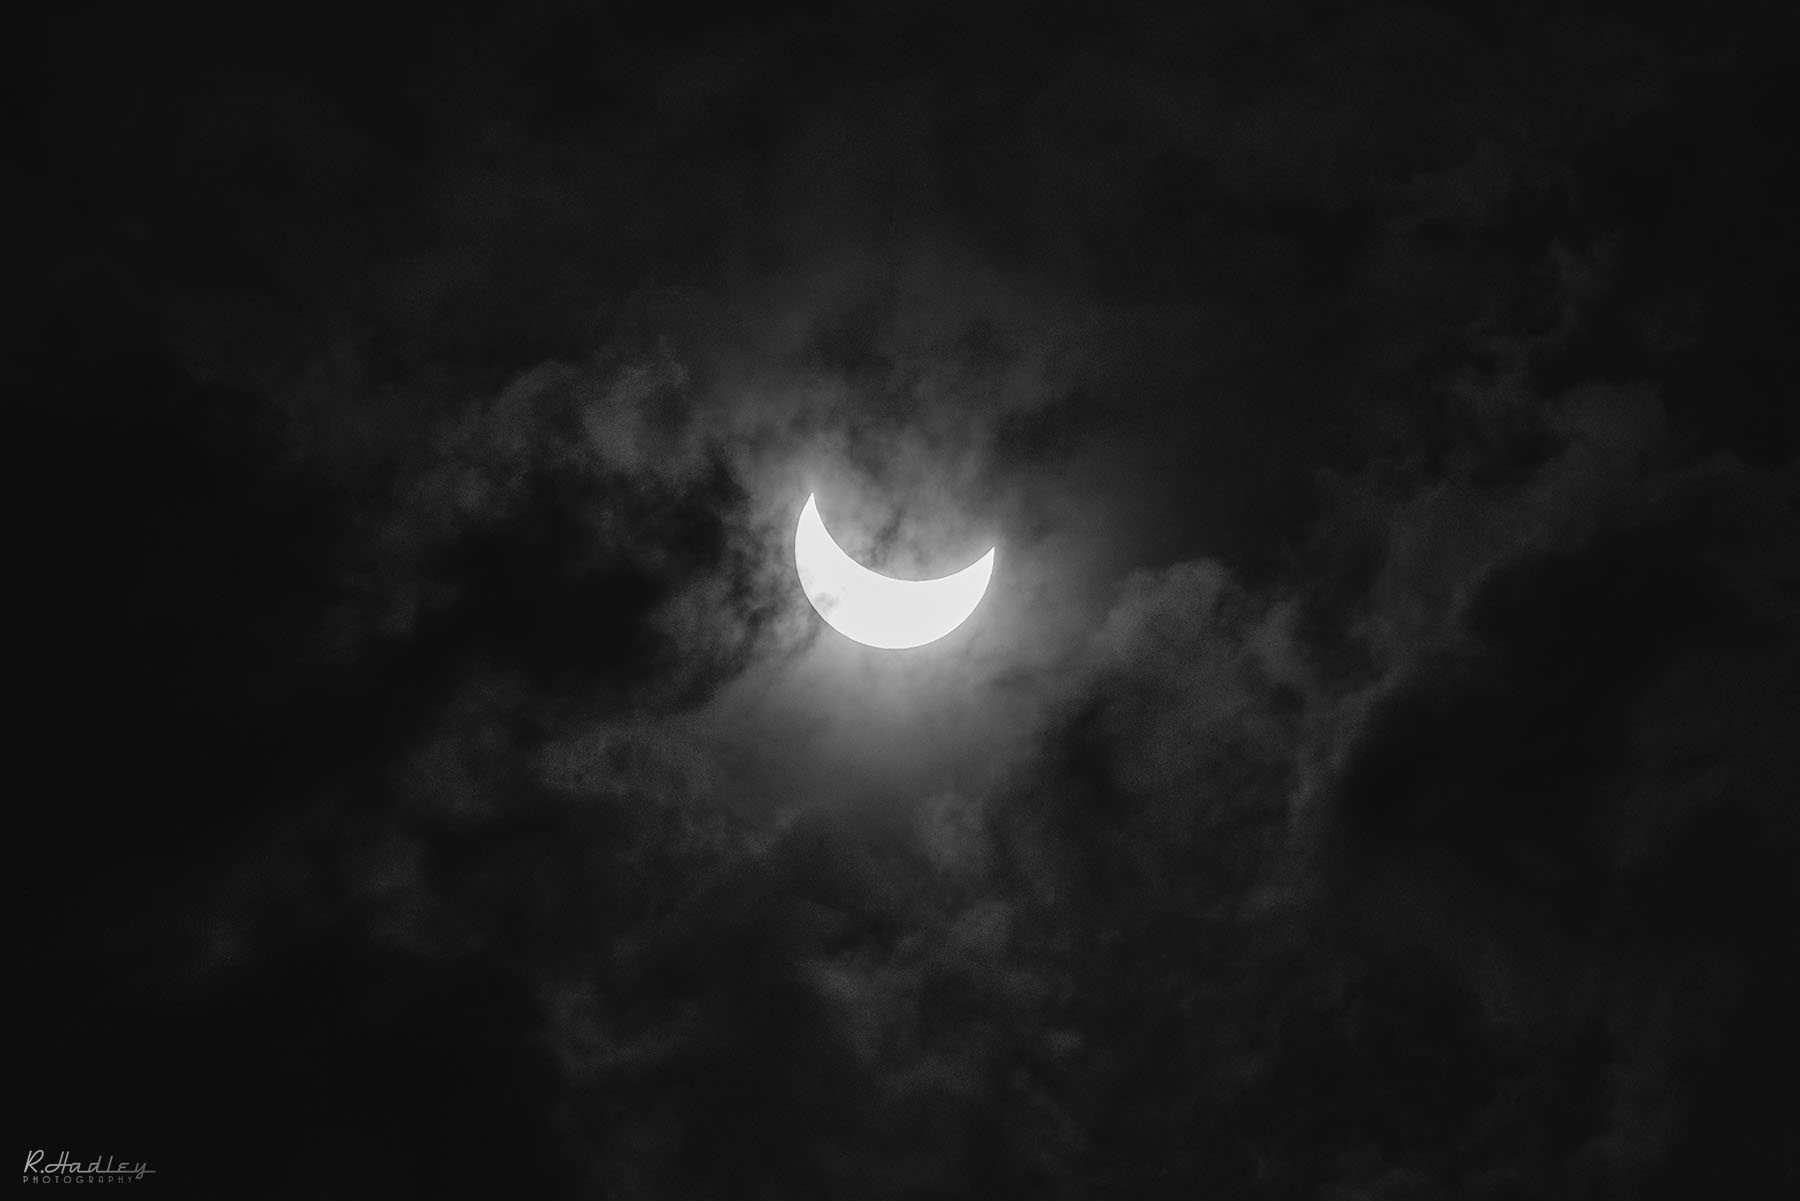 Event of the Solar Eclipse 2015 over Barcelona